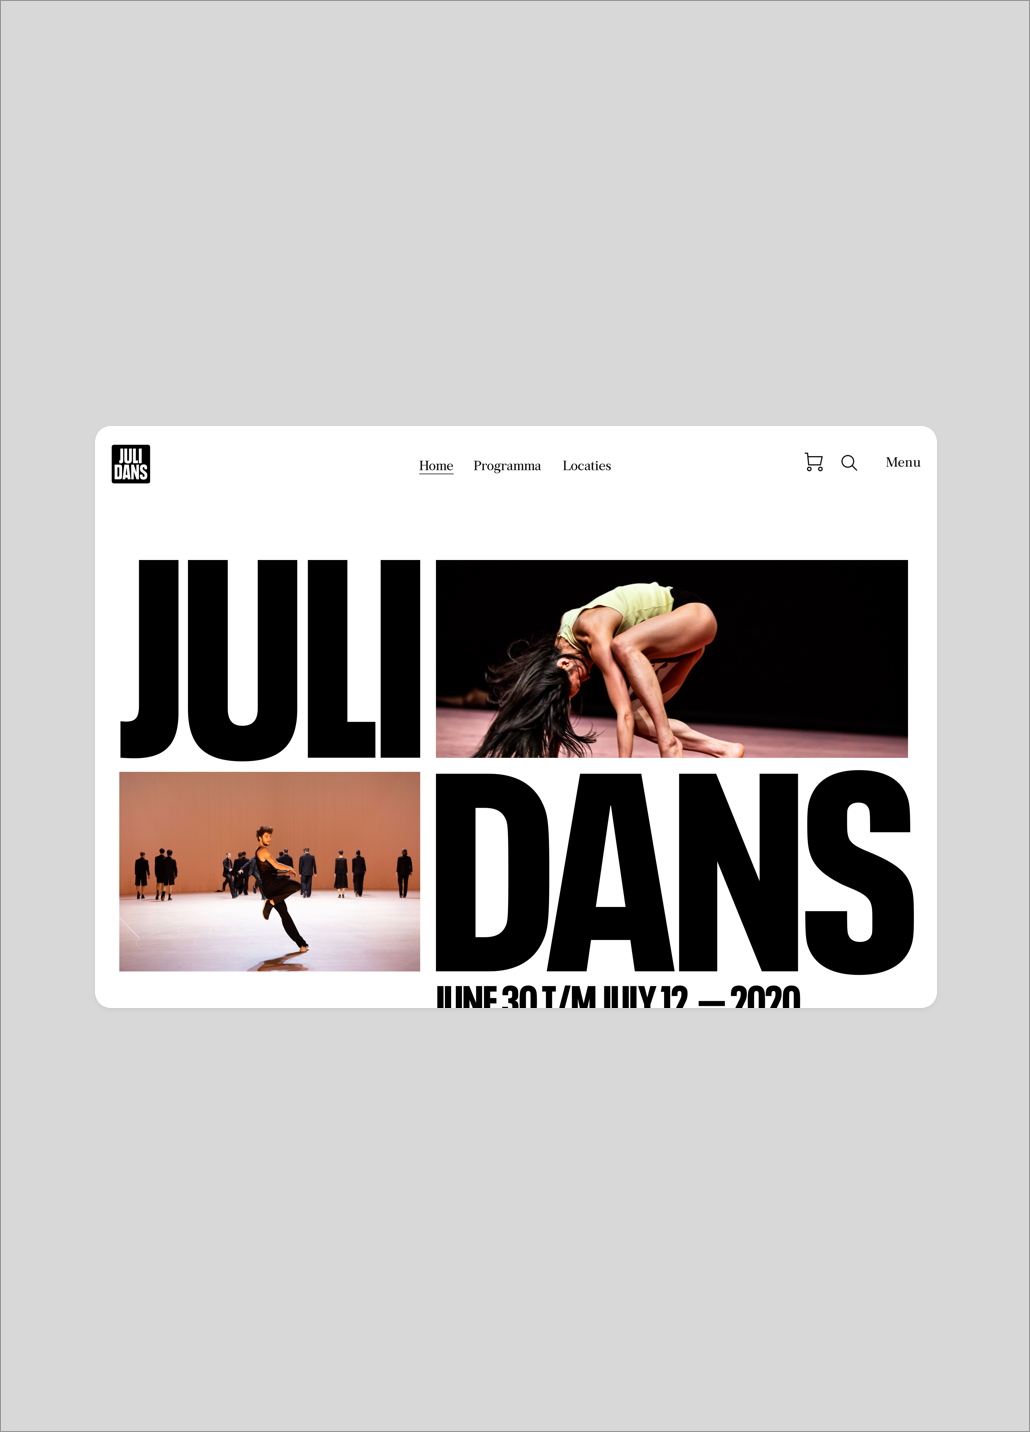 Julidans festival website